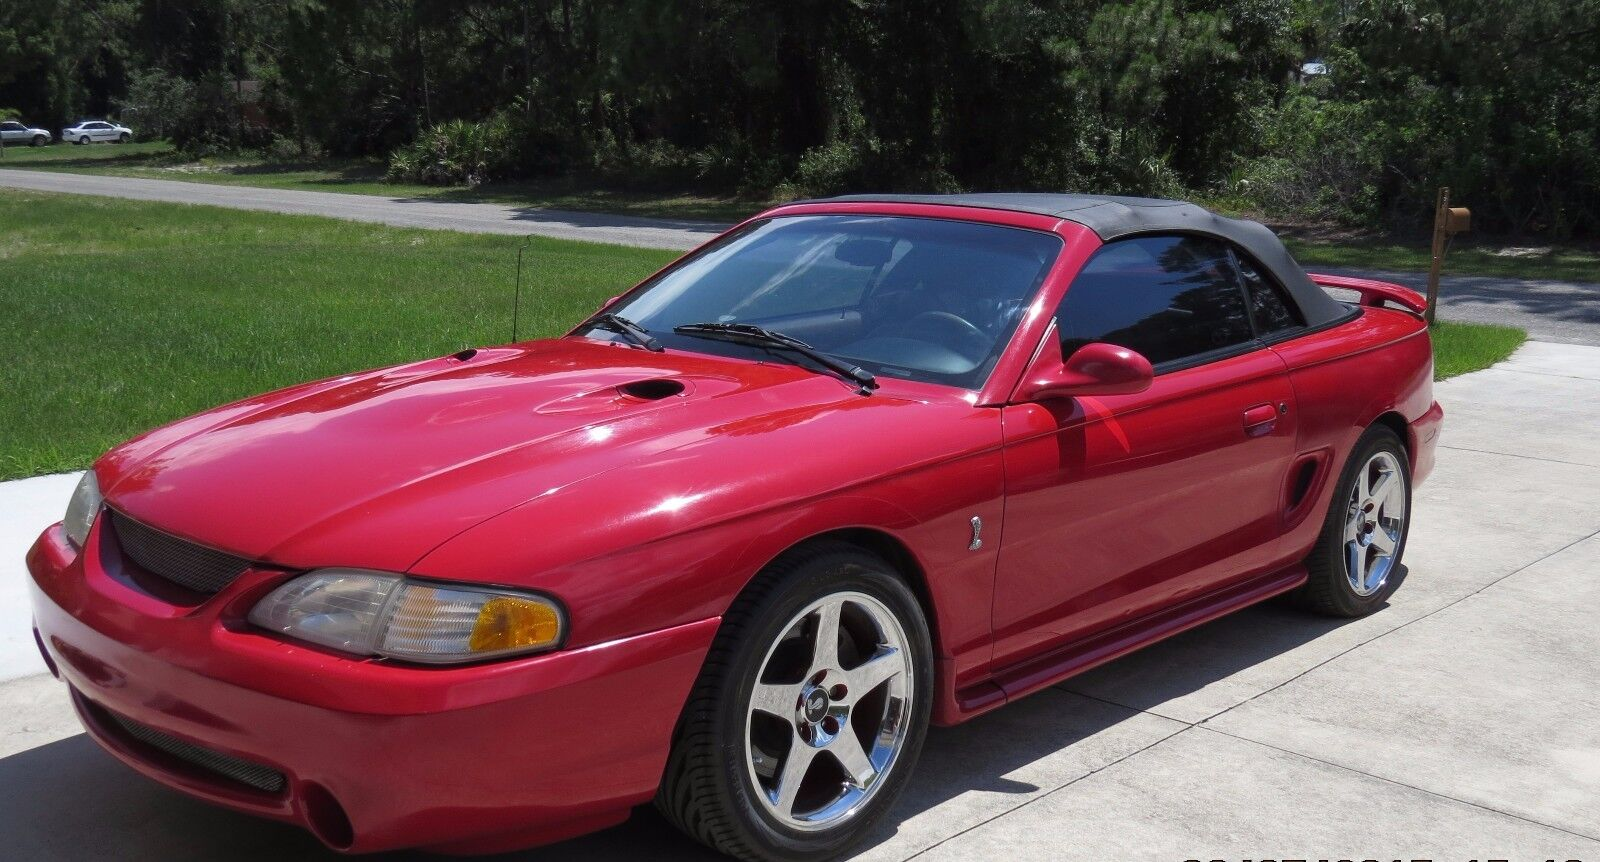 1997 mustang cobra convertible used ford mustang for sale in lehigh acres florida. Black Bedroom Furniture Sets. Home Design Ideas